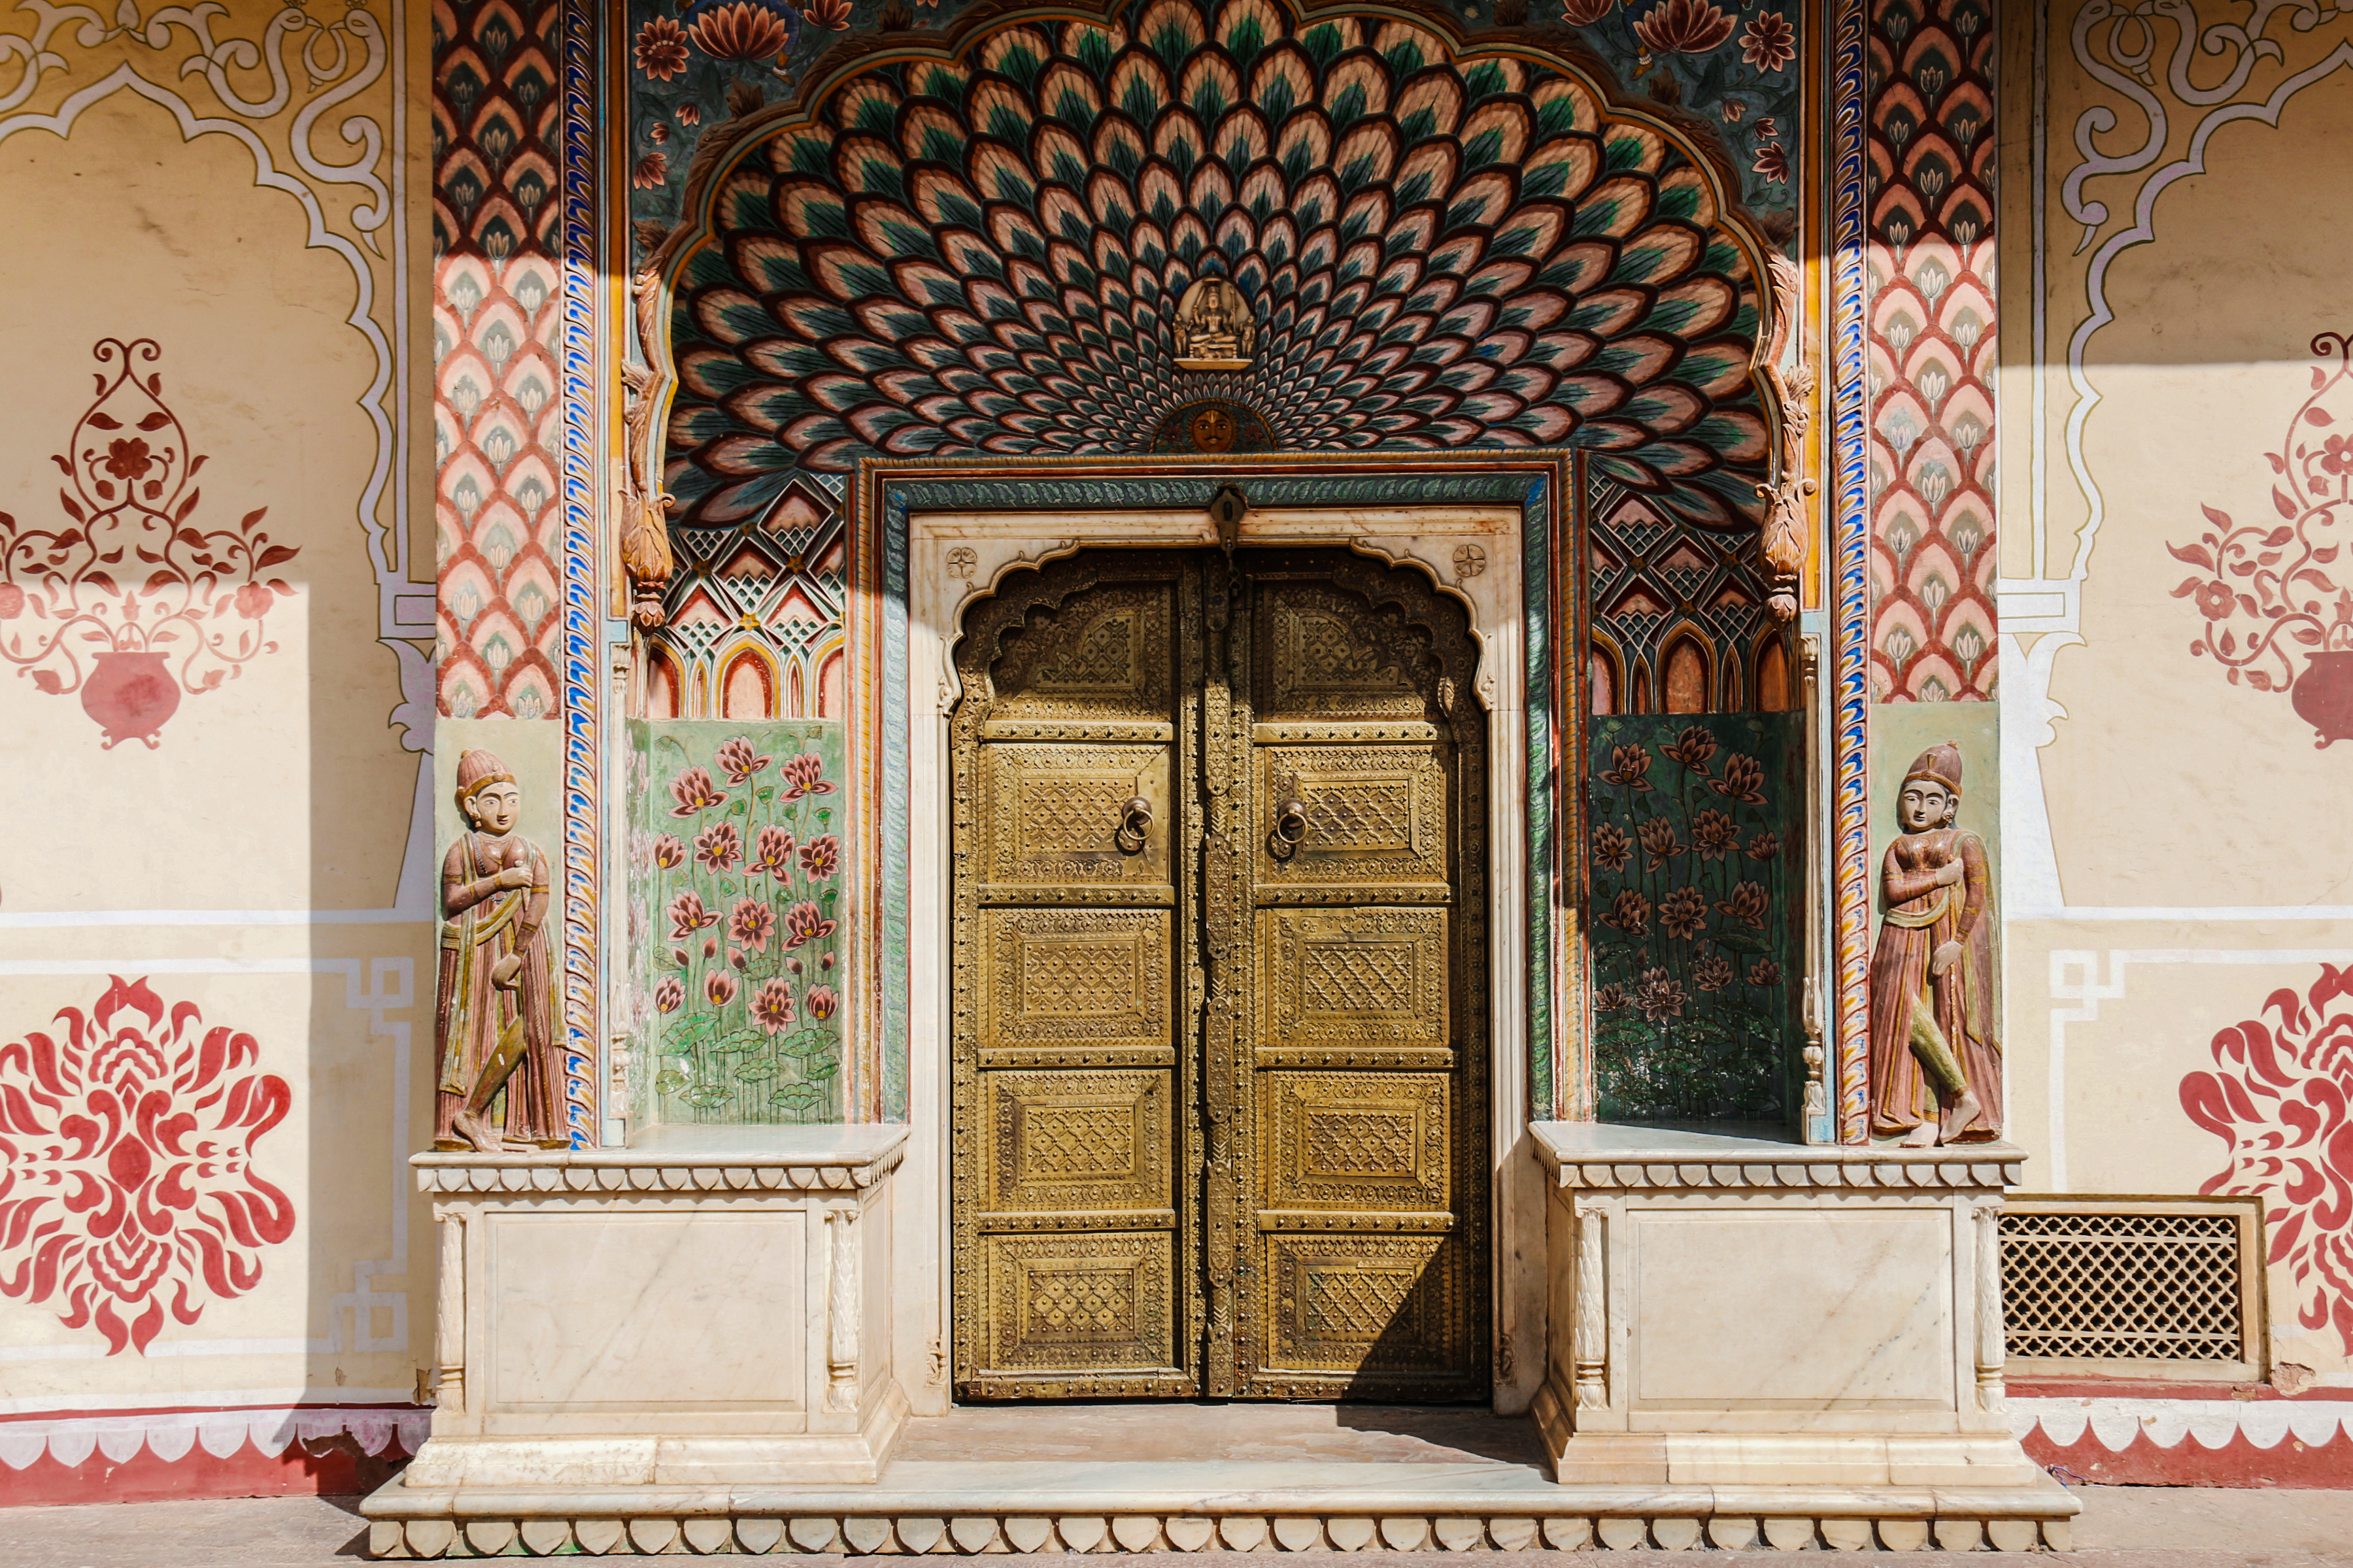 Amer Fort, India